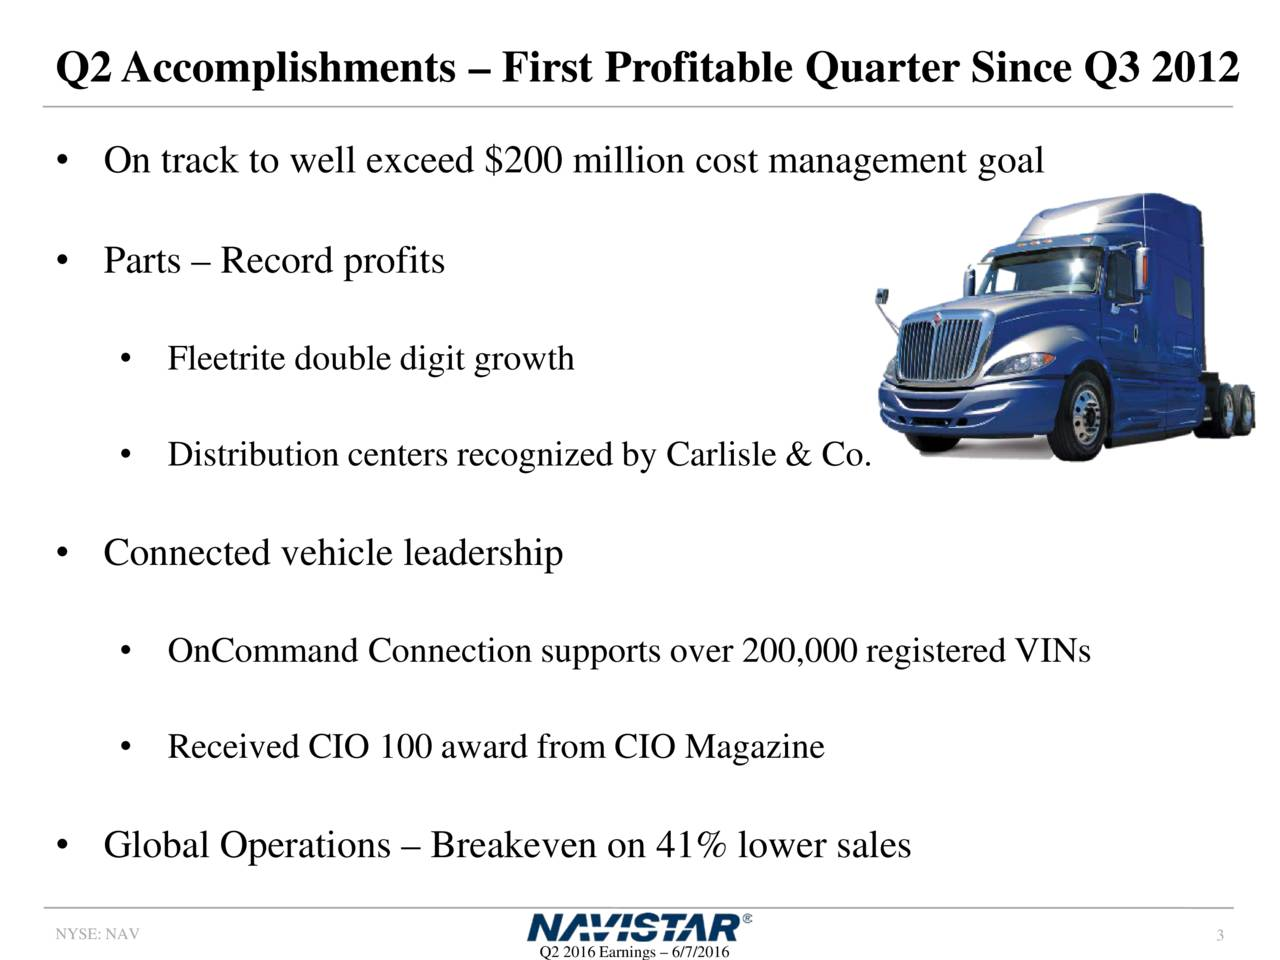 On track to well exceed $200 million cost management goal Parts  Record profits Fleetrite double digit growth Distribution centers recognized by Carlisle& Co. Connected vehicle leadership OnCommand Connection supports over 200,000 registered VINs Received CIO 100 award from CIO Magazine Global Operations  Breakeven on 41% lower sales NYSE: NAV 3